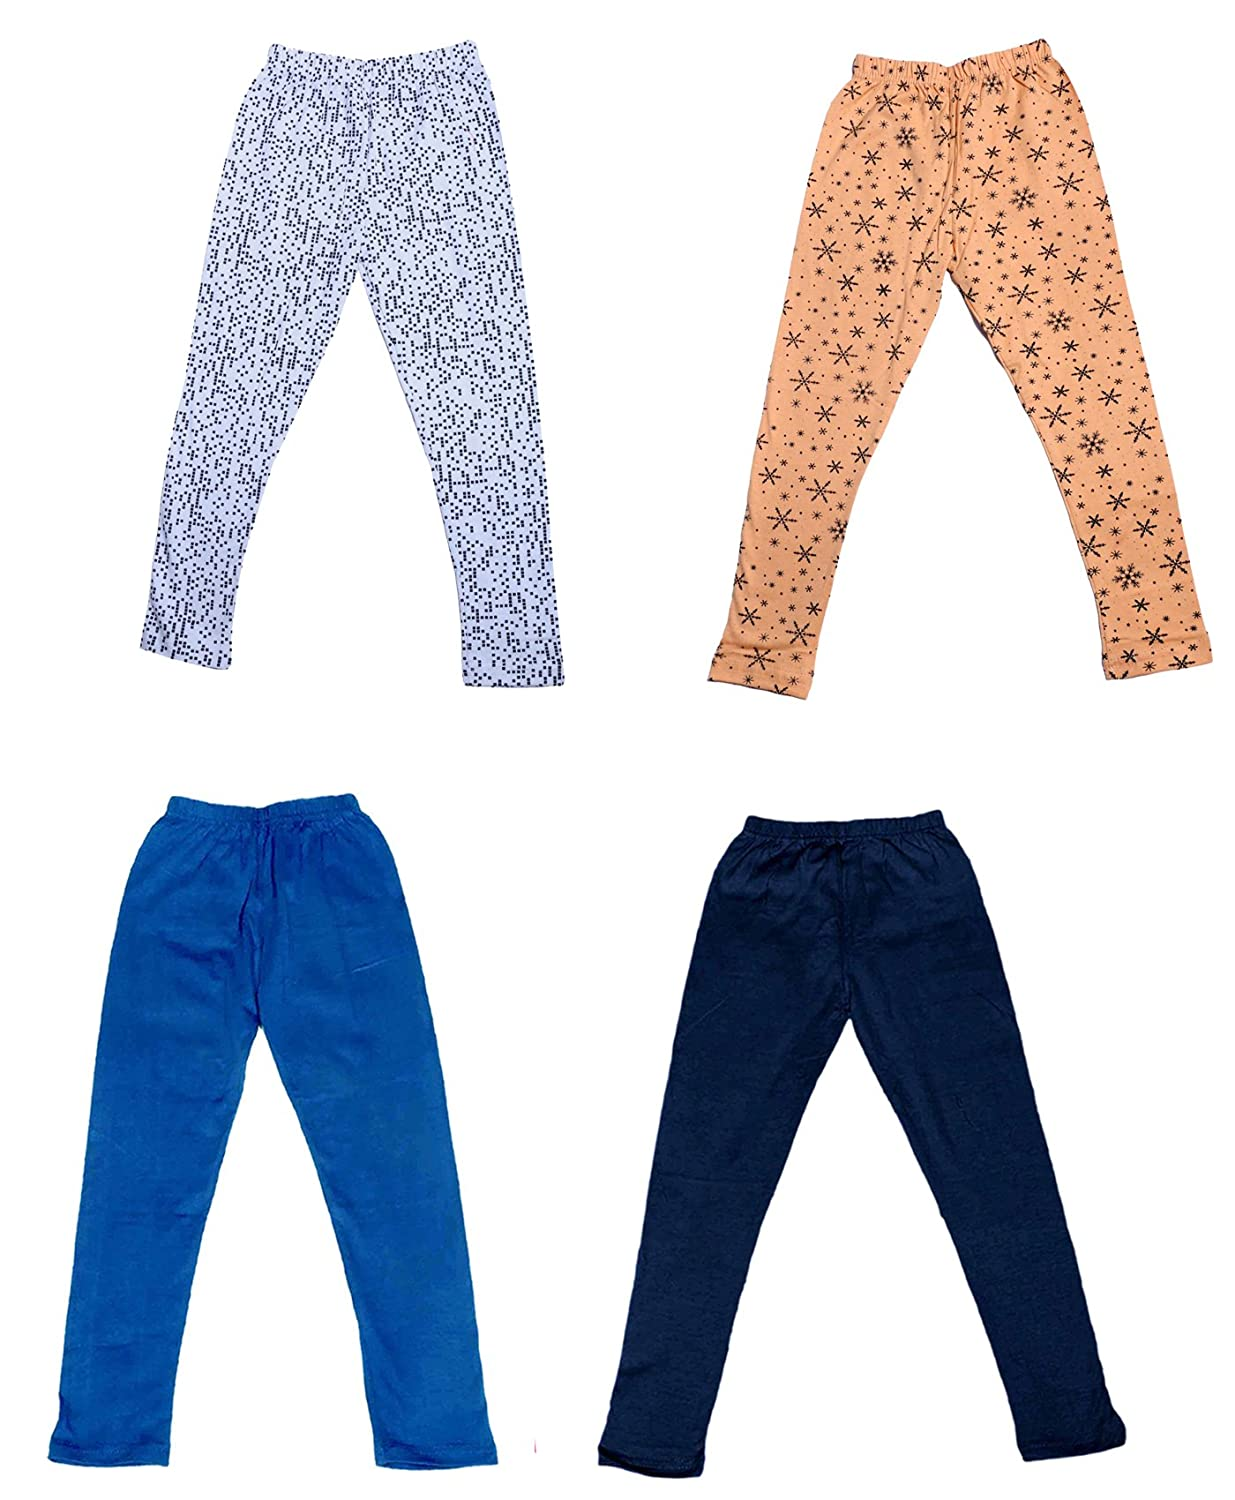 Pack Of 4 Indistar Girls 2 Cotton Solid Legging Pants /_Multicolor/_Size-7-8 Years/_71409101921-IW-P4-30 and 2 Cotton Printed Legging Pants